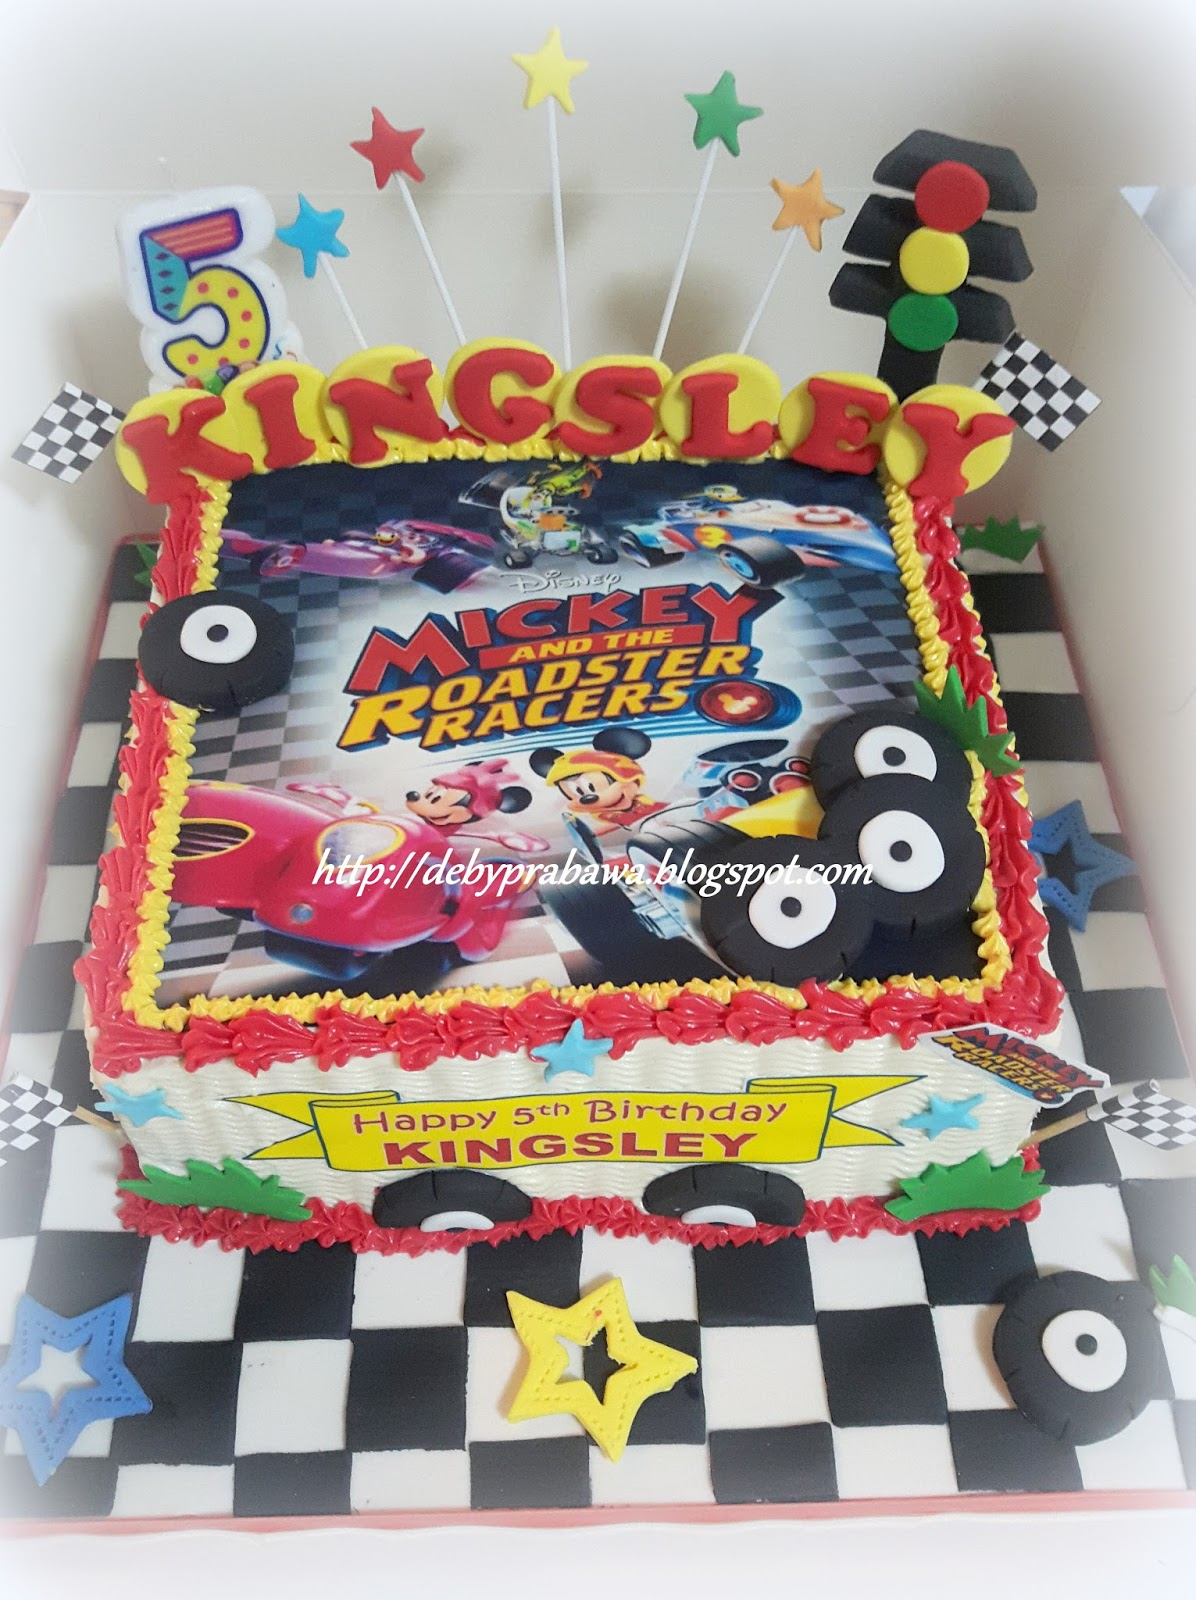 Butterfly Cake Mickey Roadster Racers Cake